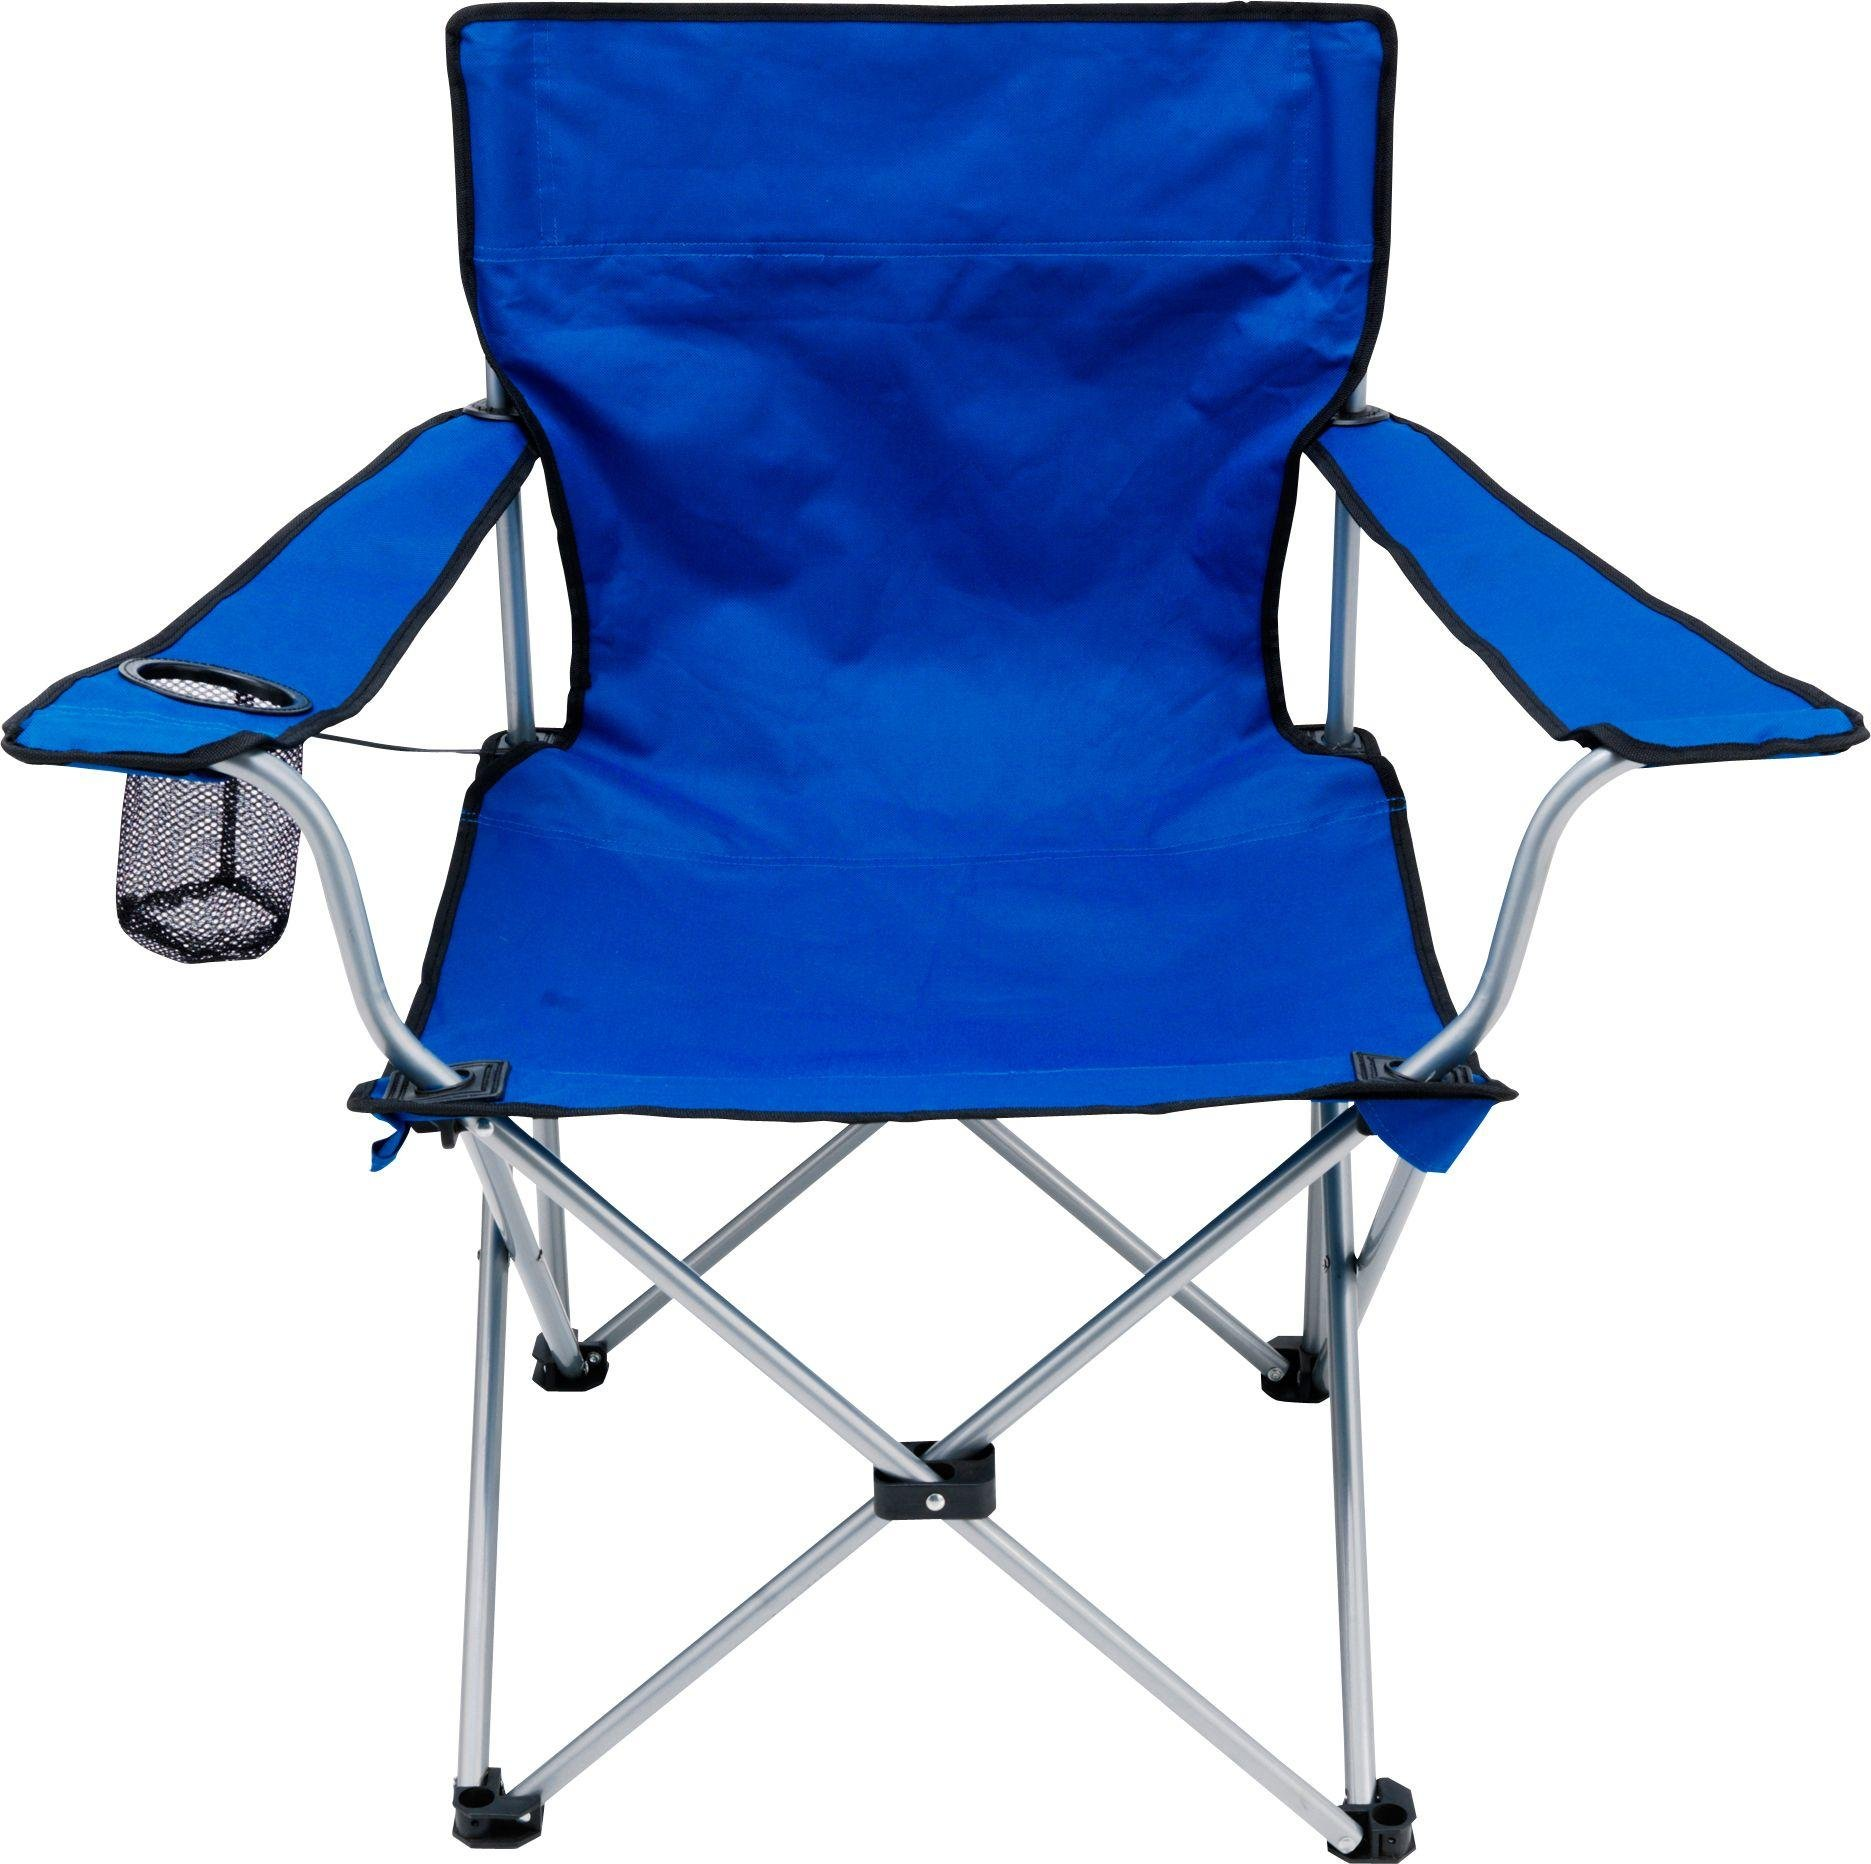 Fresh Steel Folding Camping Chair927 8321 Awesome - Model Of folding camping chairs in a bag Amazing